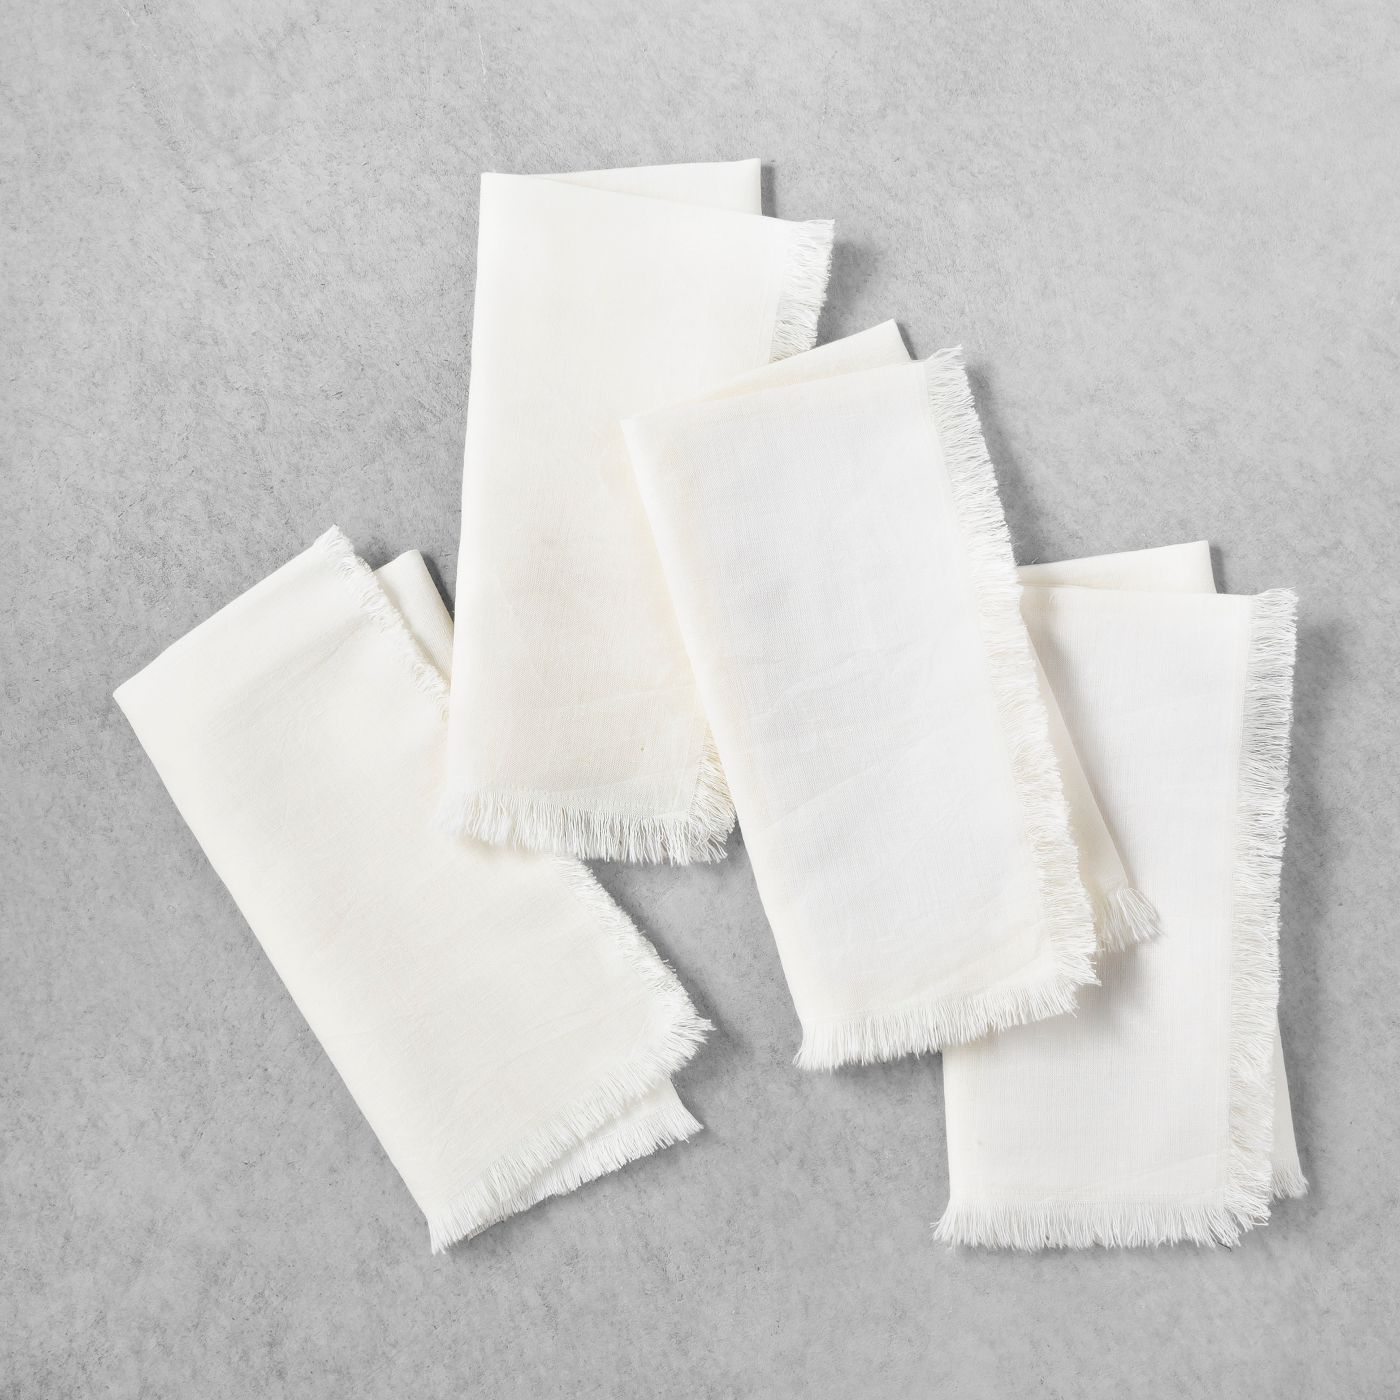 White Linen Napkin | Set of 4